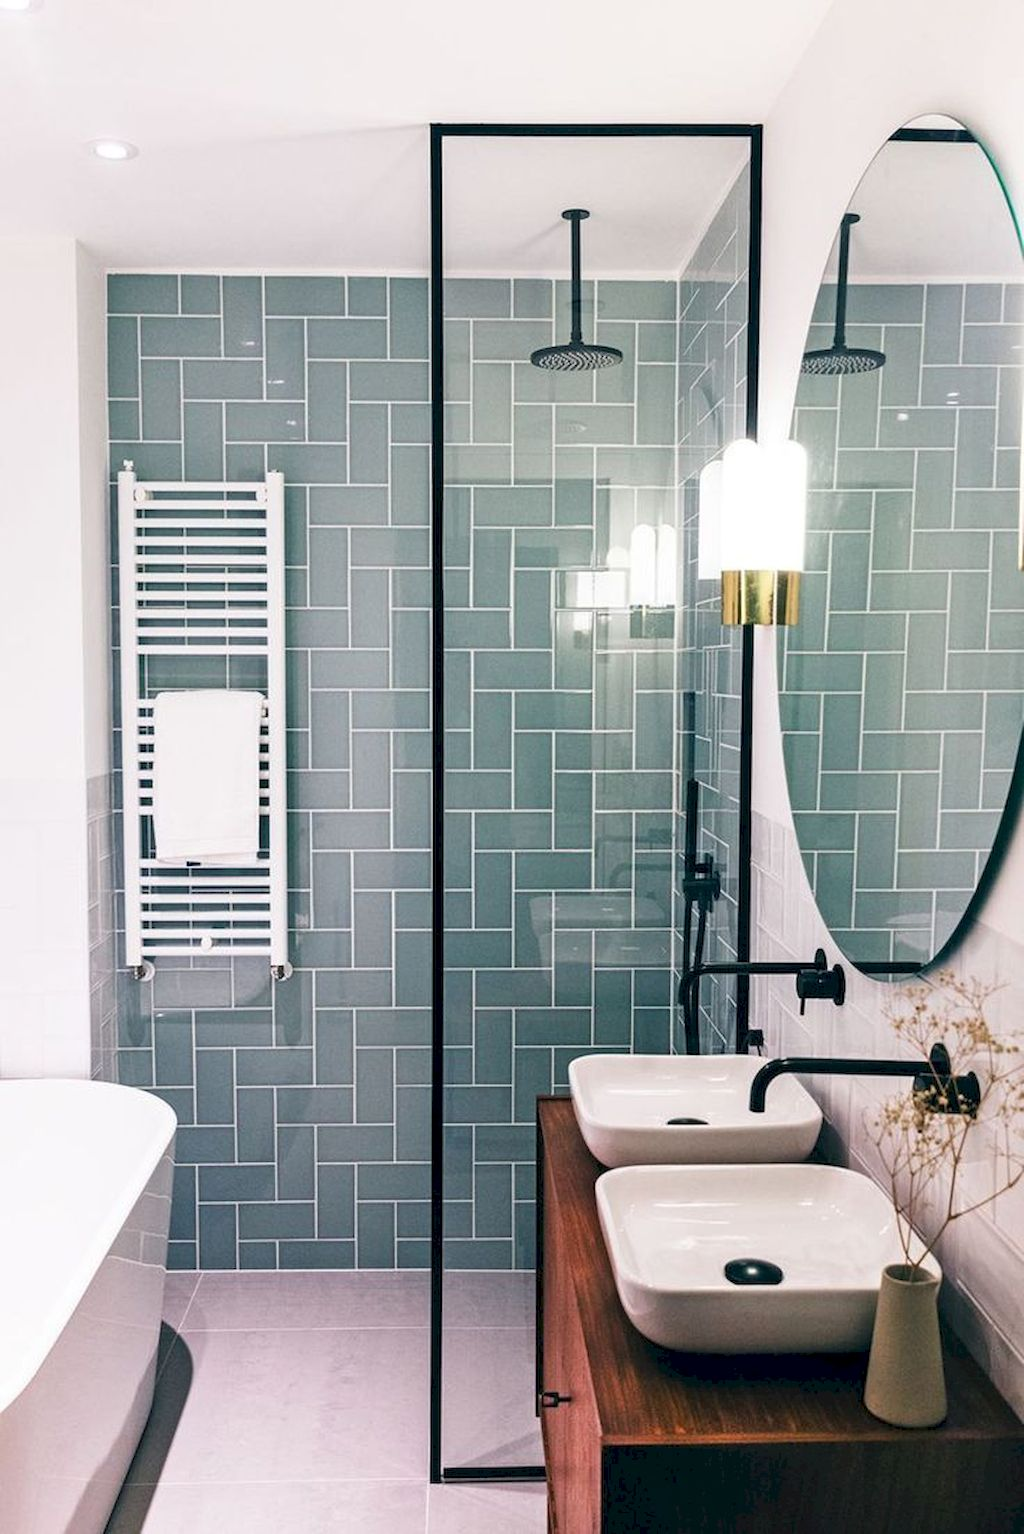 70+ Tiles Ideas For Small Bathroom   Get More Ideas In Our Gallery | #